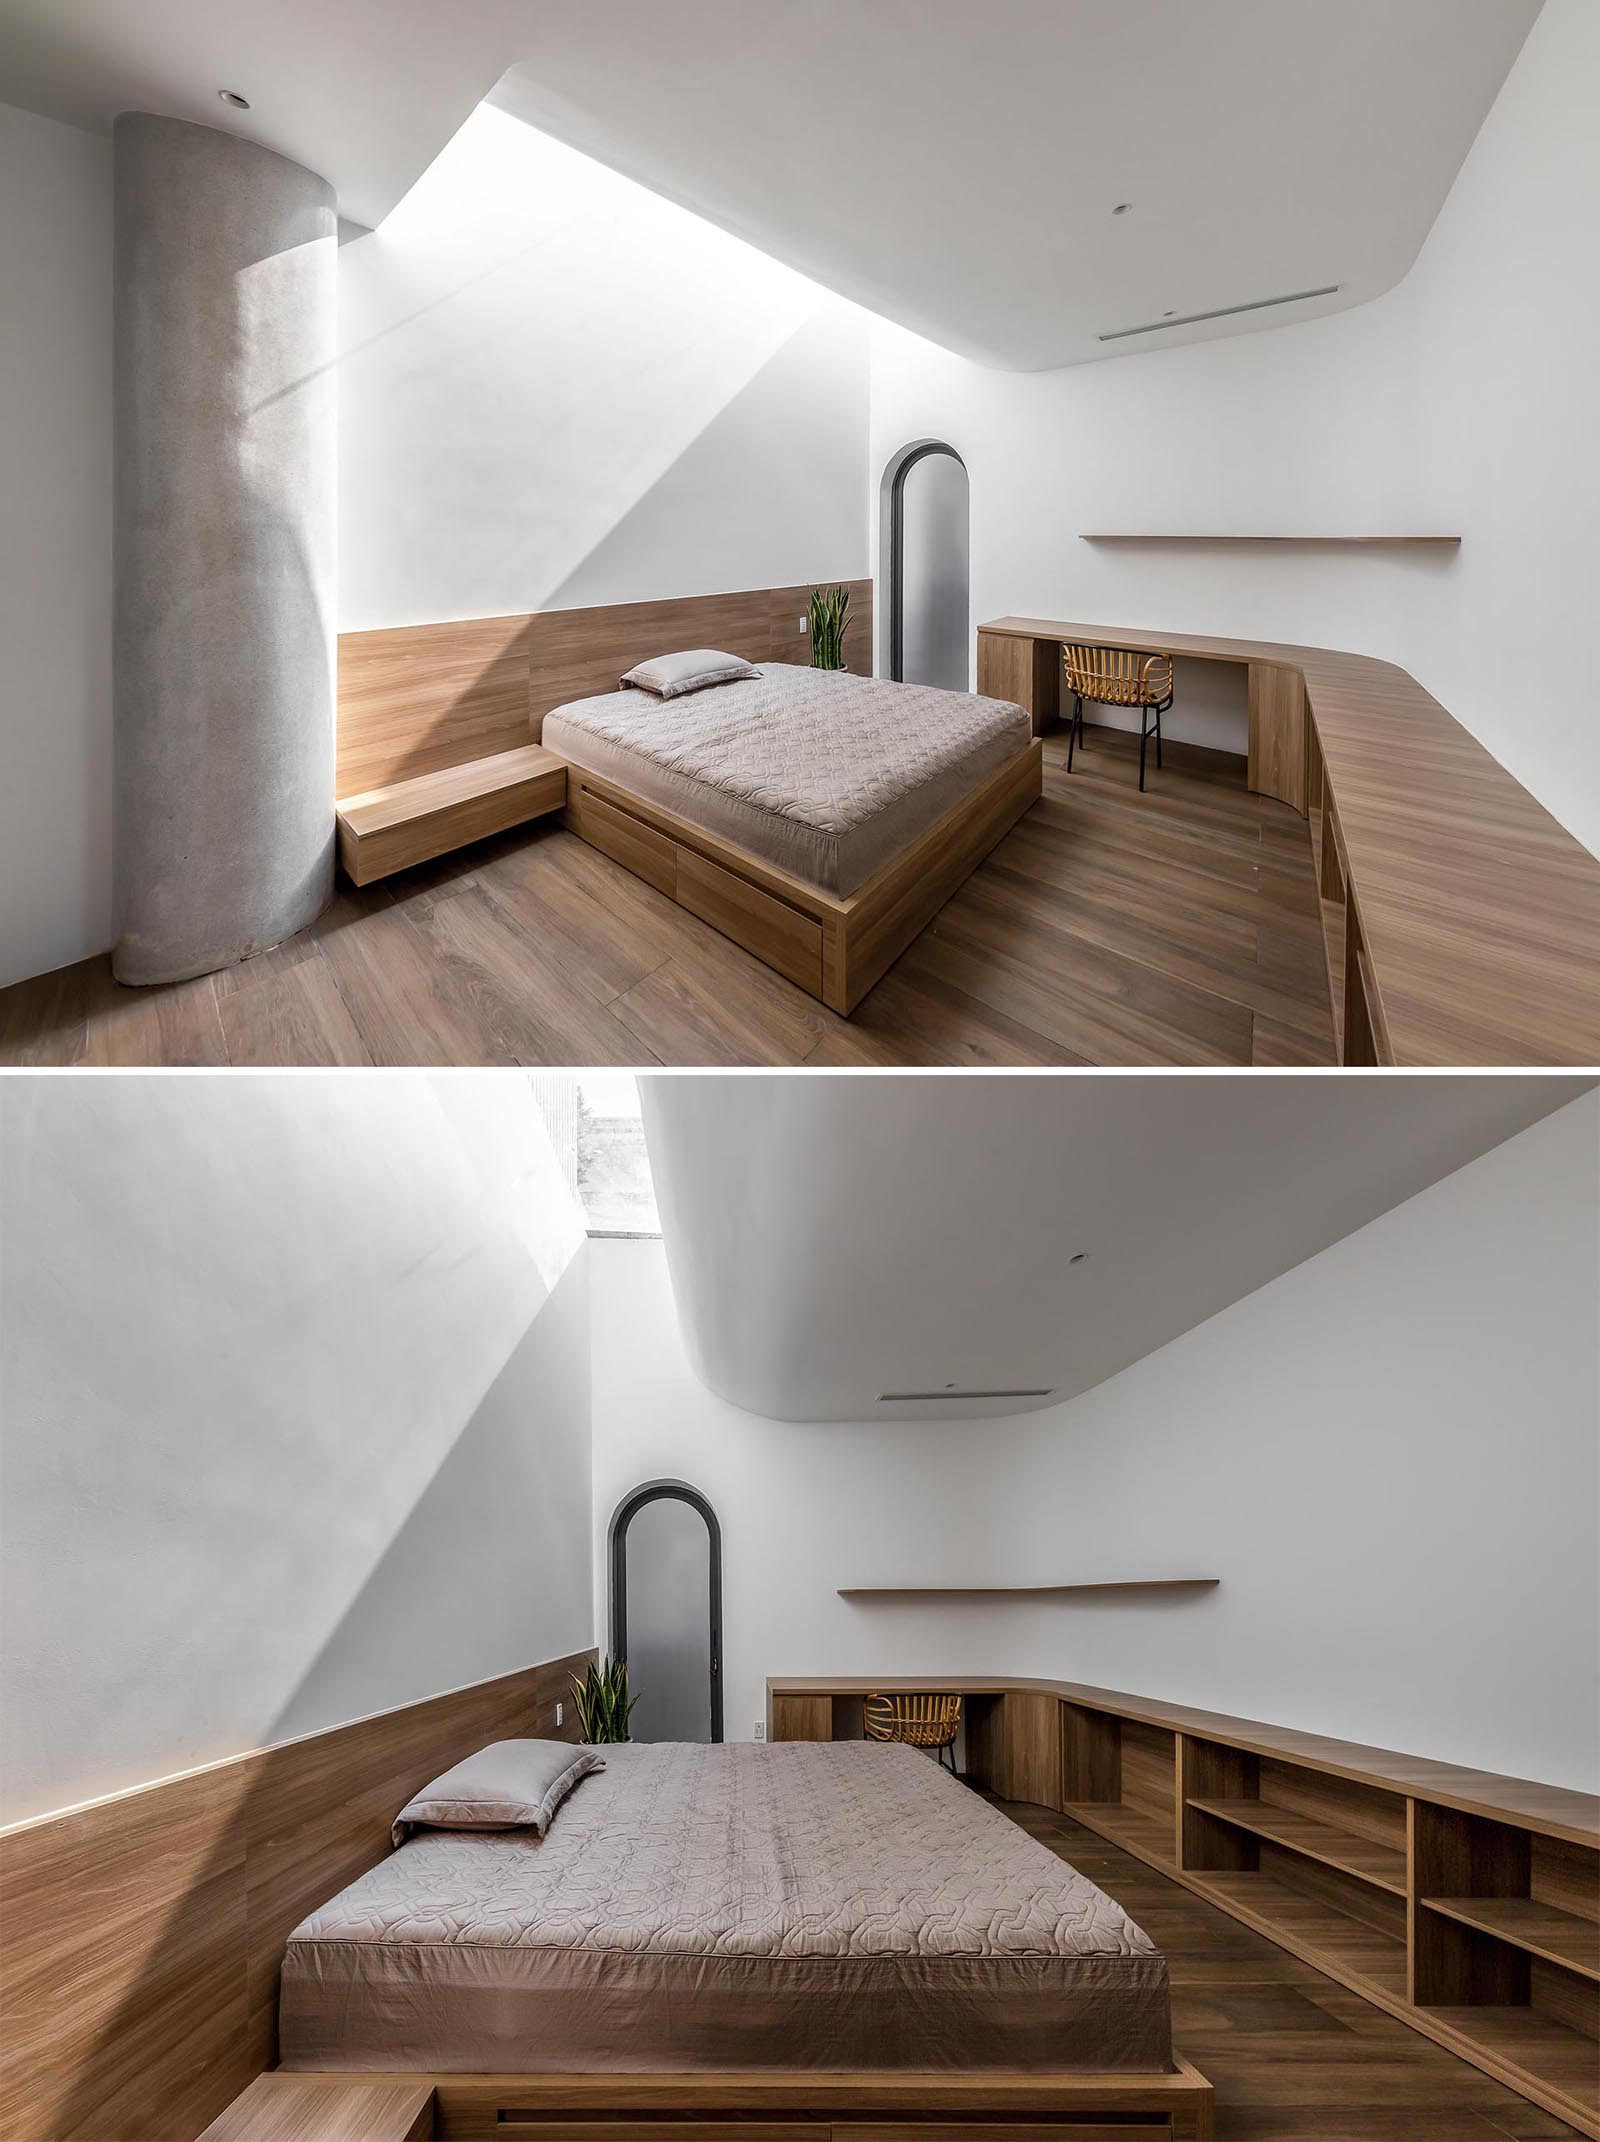 This modern bedroom design includes a custom bed frame with bedside tables, as well as a desk that transitions into open shelving.